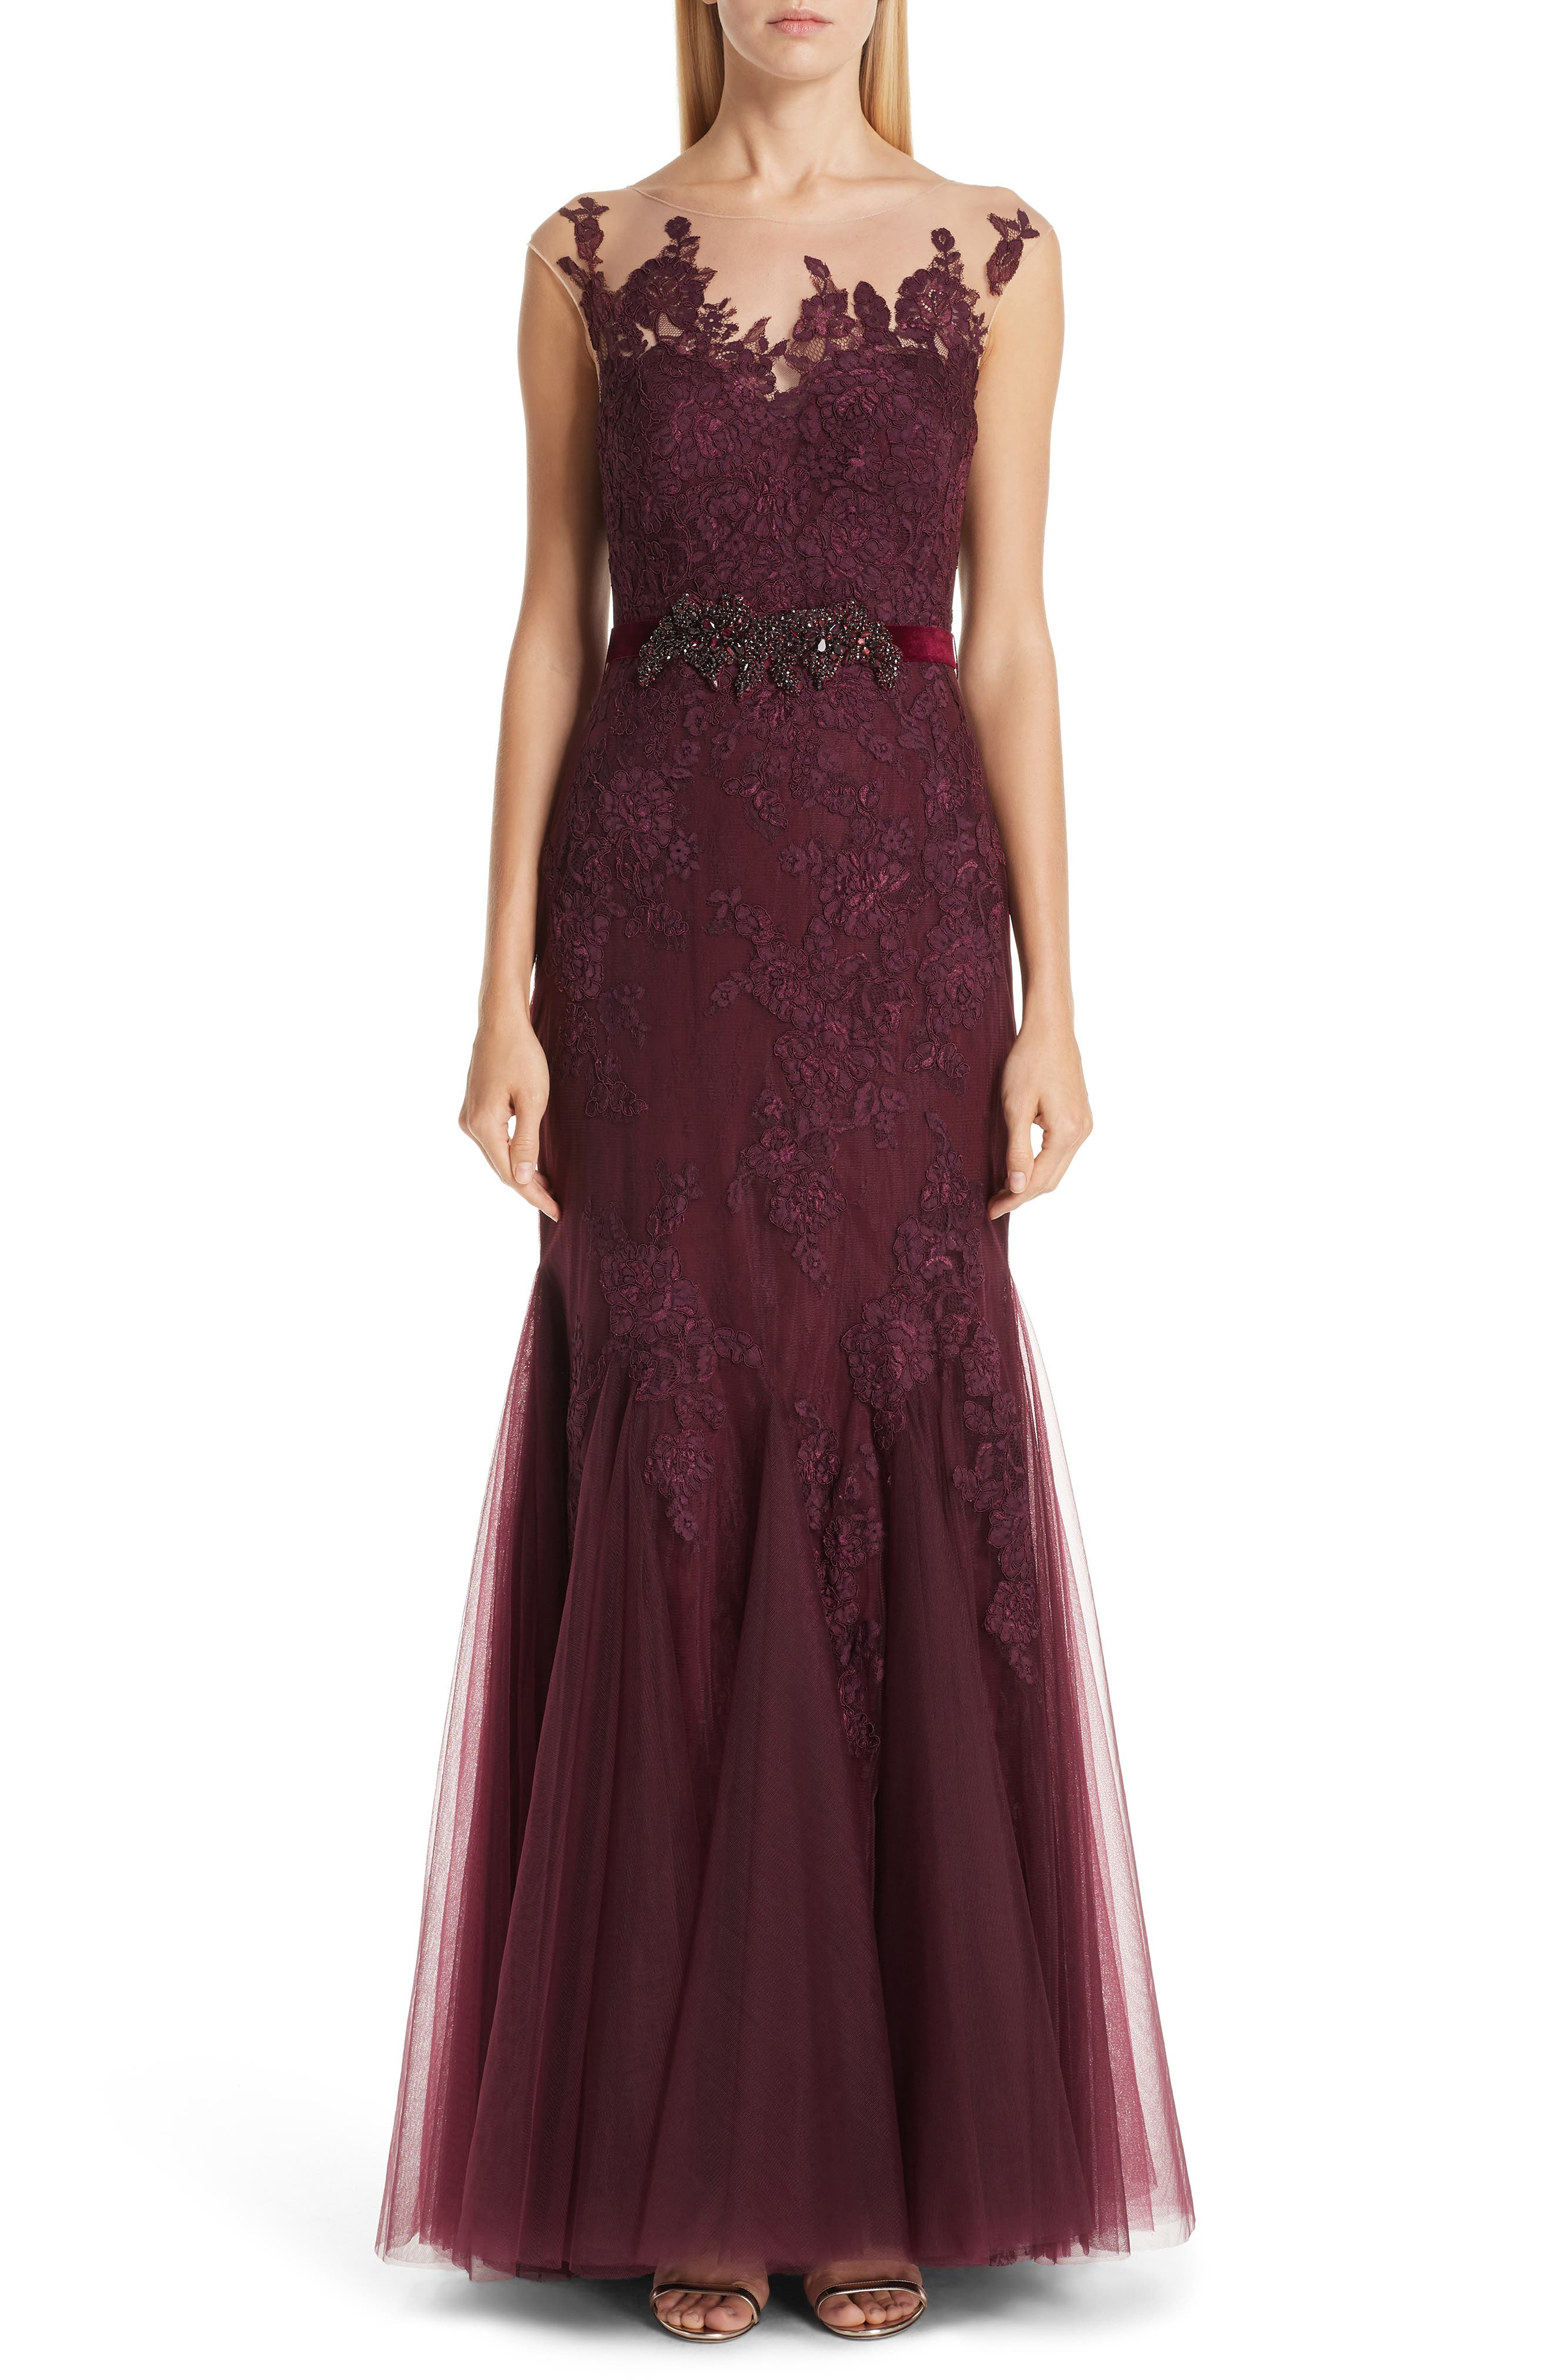 BADGLEY MISCHKA Collection Belted Illusion Neck Lace Trumpet Gown in Burgundy